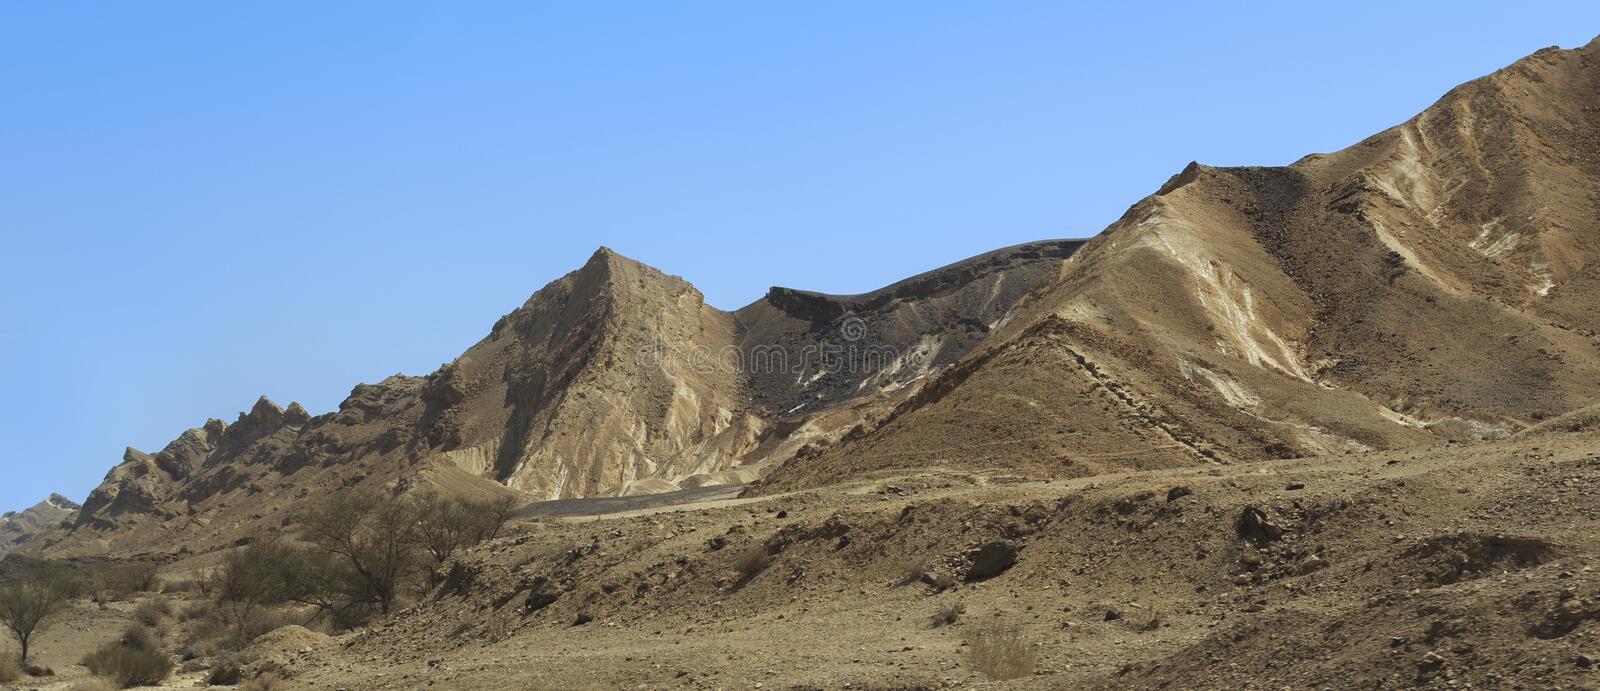 Crater Ramon in the Negev desert, Israel stock images